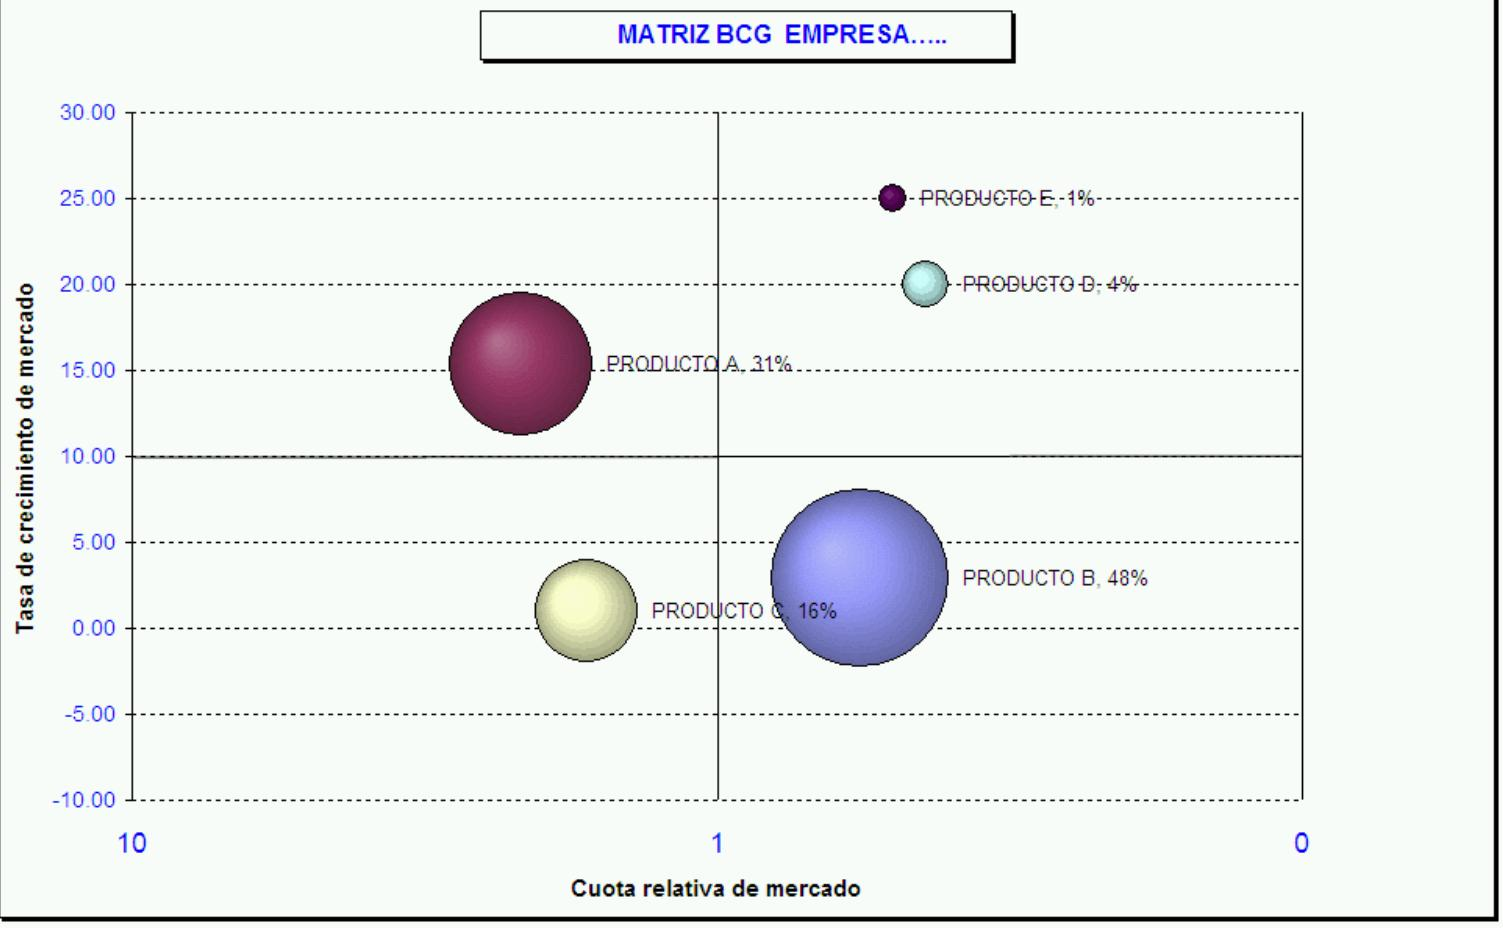 Economía Excel Matriz Bcg Boston Consulting Group